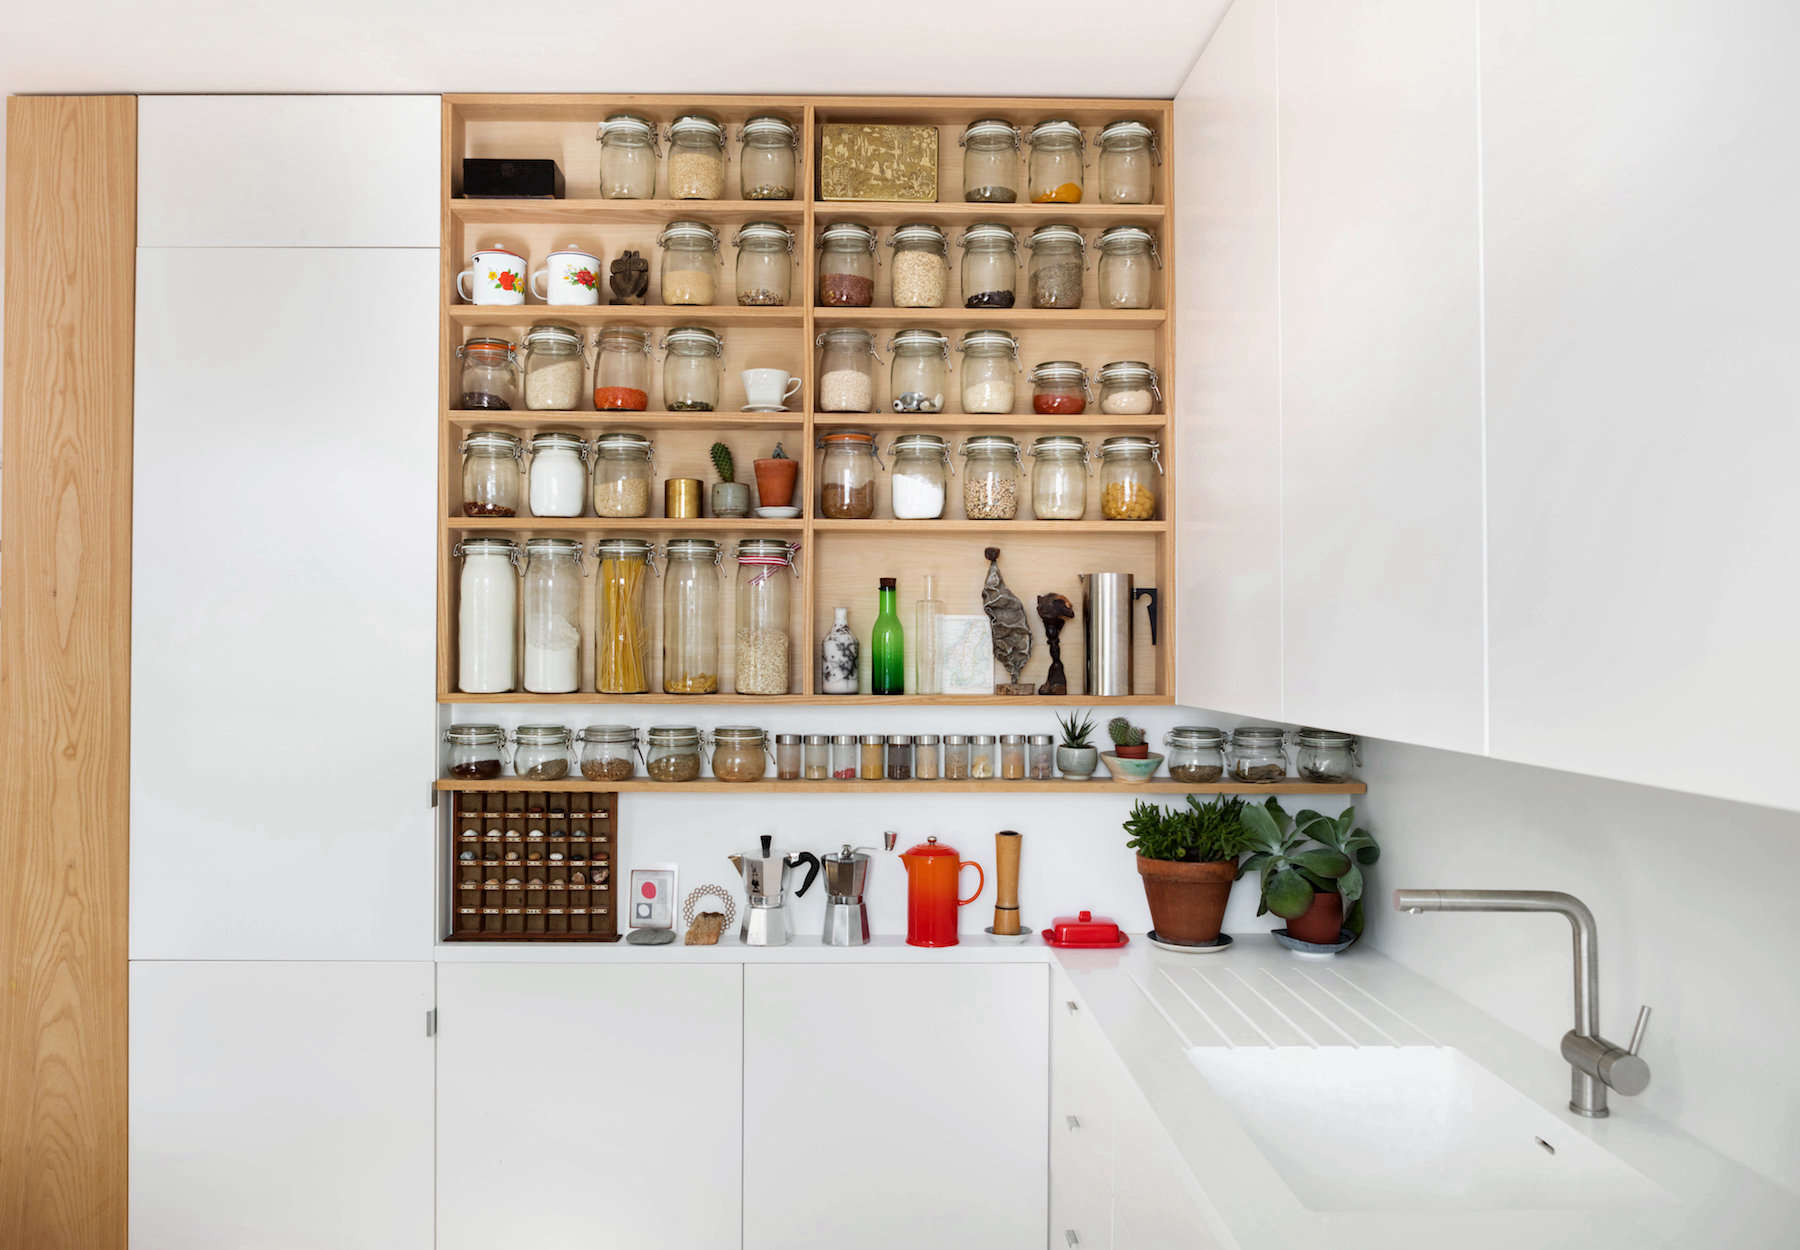 In addition to the open pantry that was DIY'd by the homeowners using ash wood, they managed to fit two Ikea wall cabinets on top of each other to the left of it, and turn the leftover space above into a cabinet of its own. See Tricks of the Trade: 7 Small-Space Storage Tips from Emil Eve Architects. Photograph by Mariell Lind Hansen, courtesy of Emil Eve.